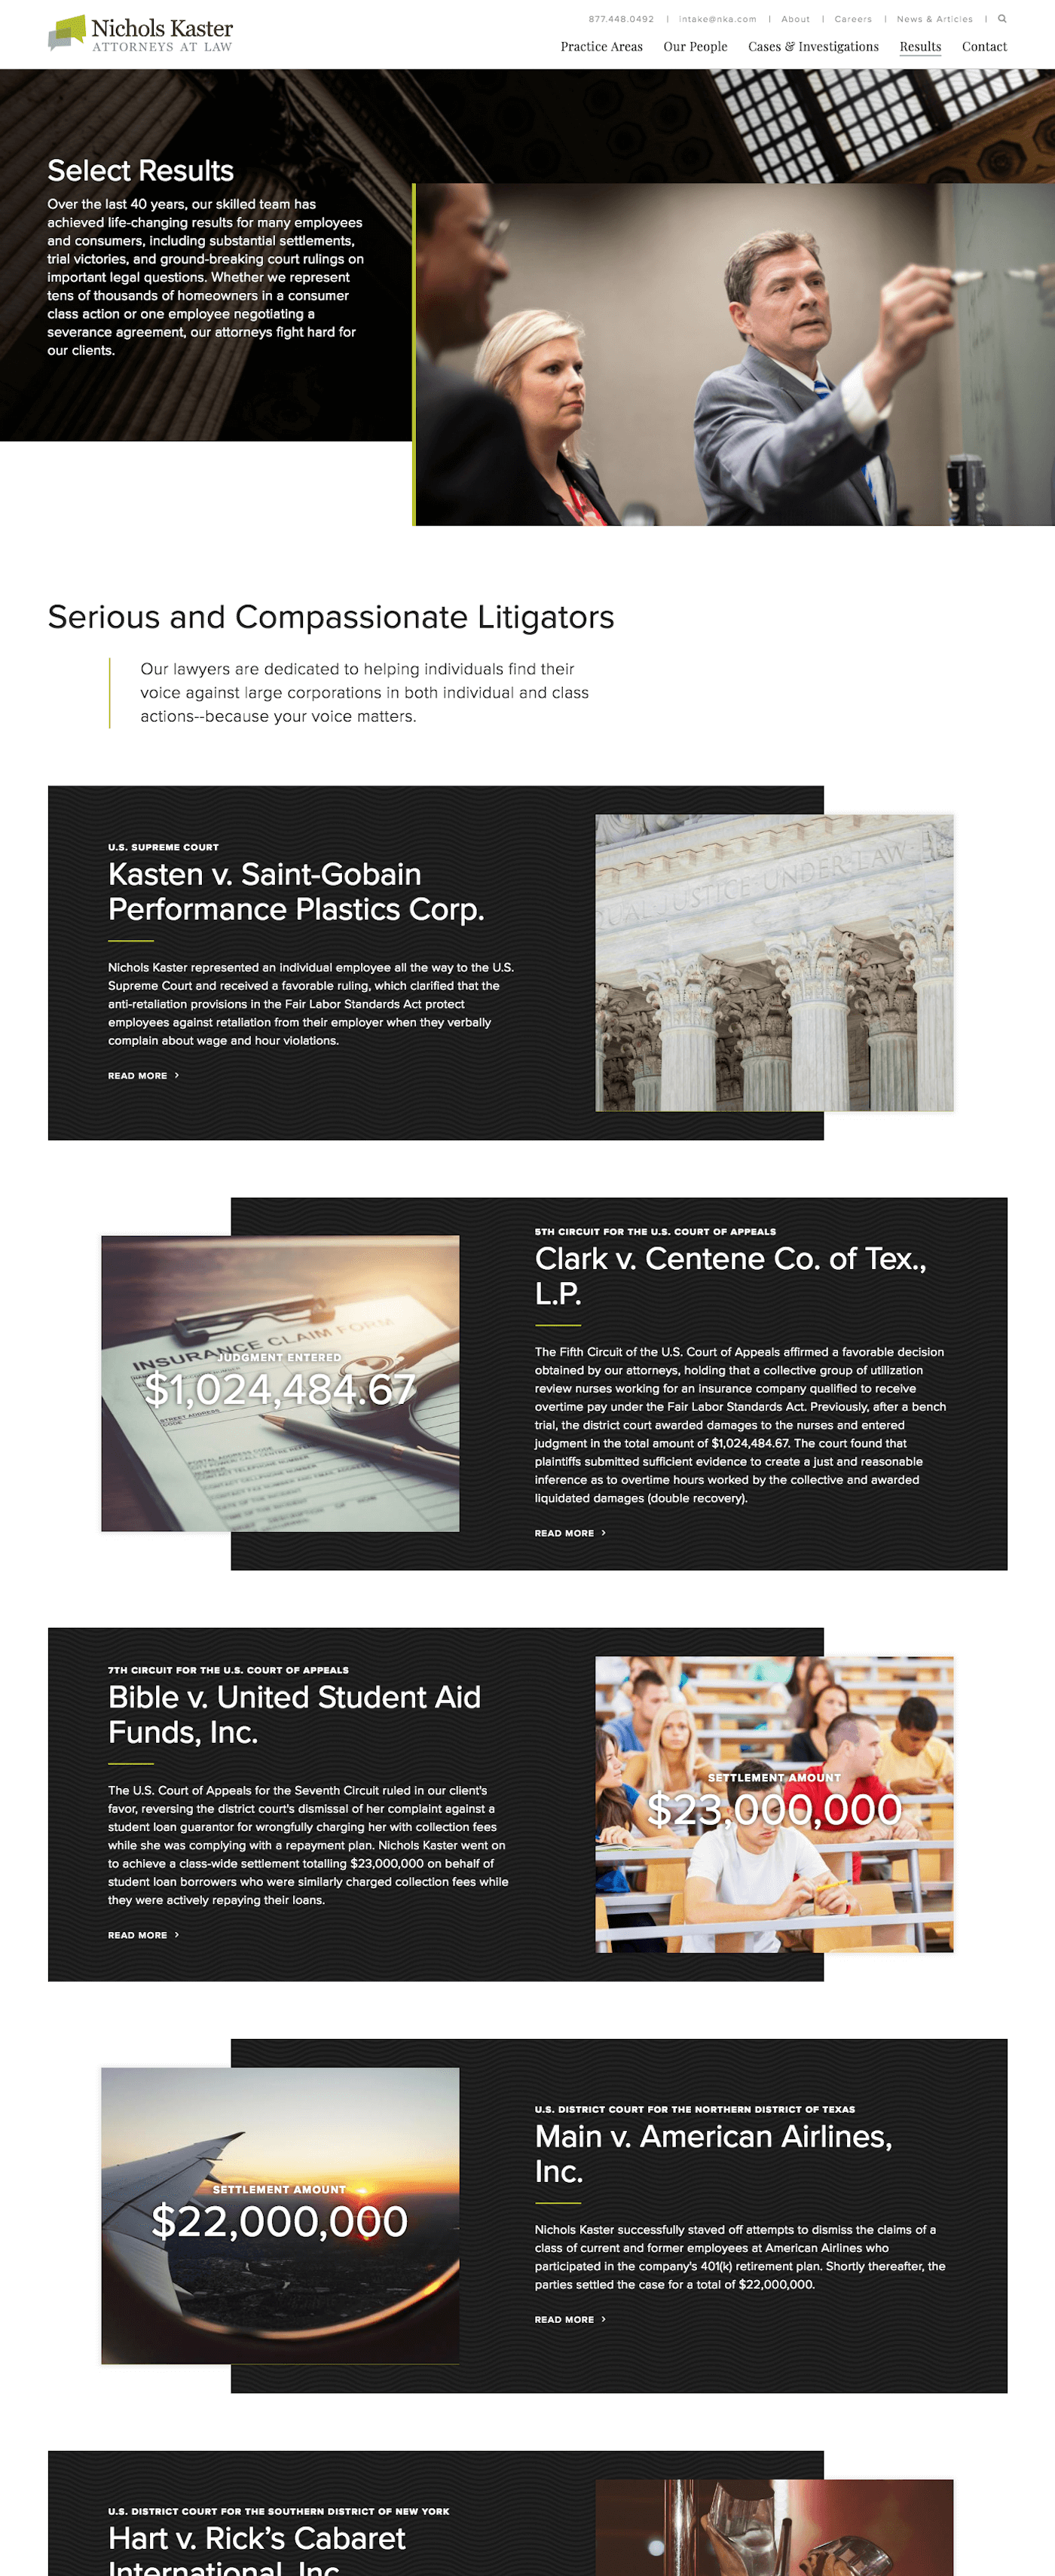 Nichols Kaster Web Design: Featured Results